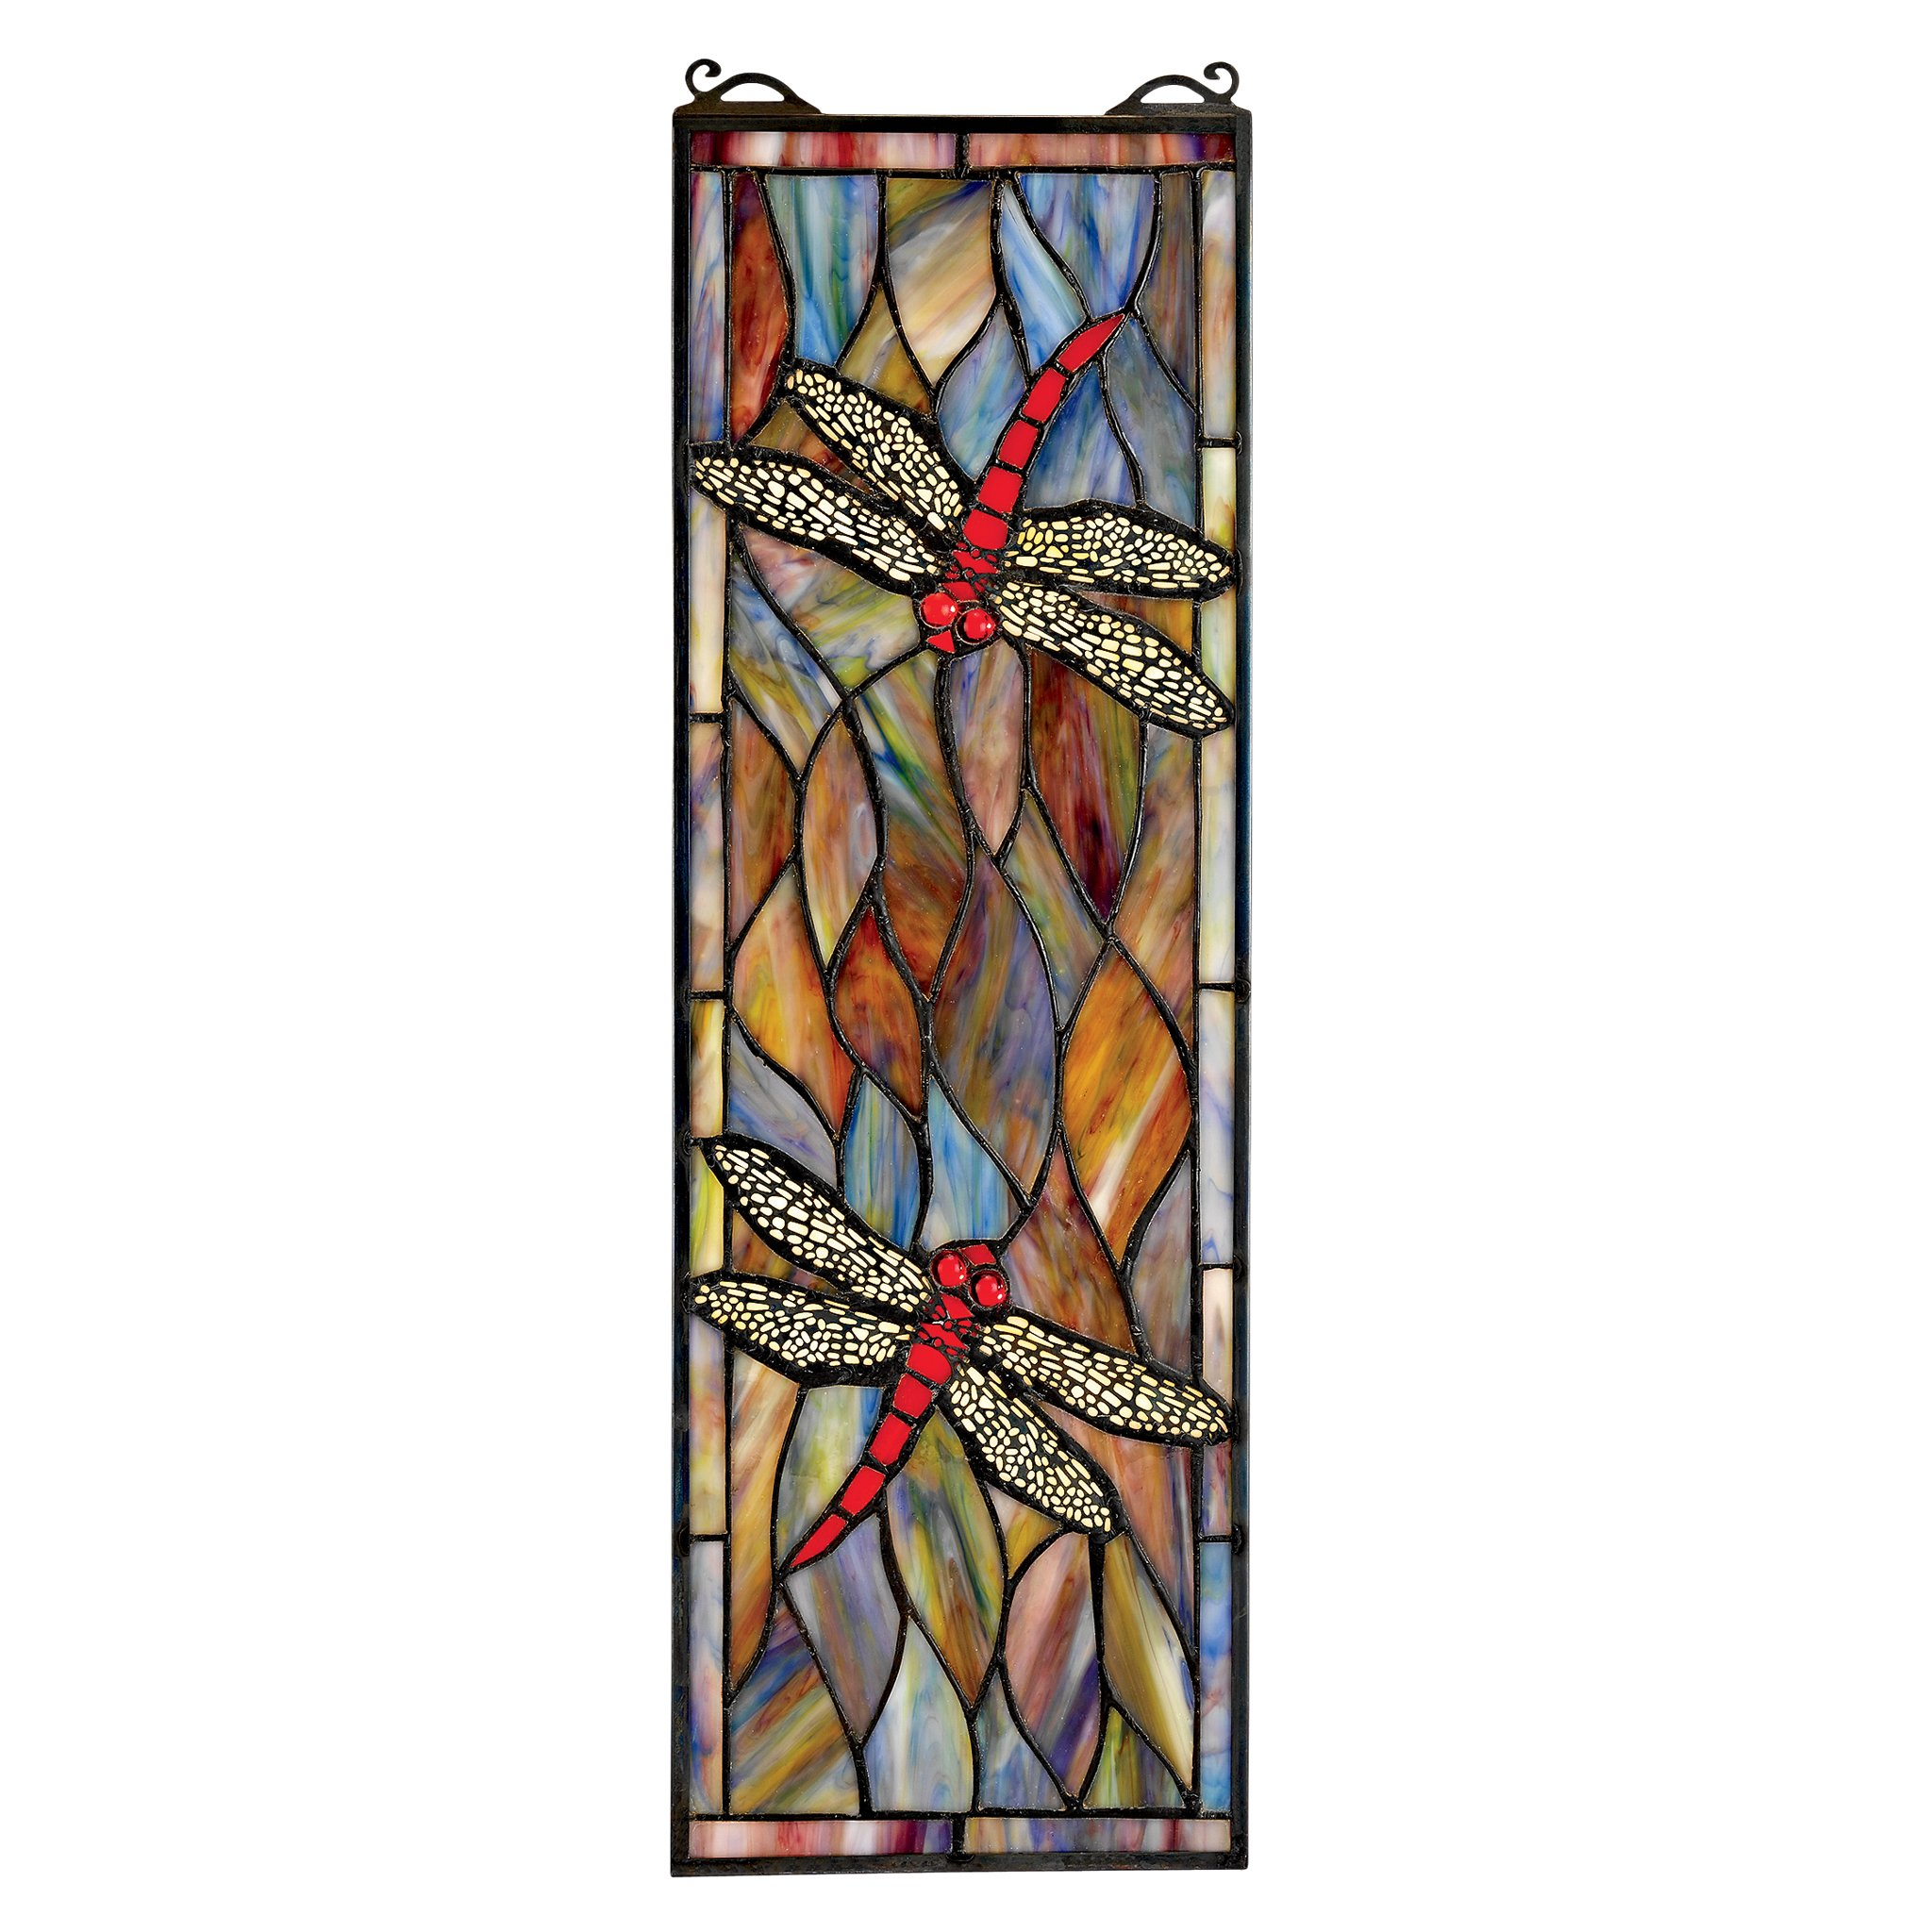 Stained Glass Panel - Dragonfly Stained Glass Window Hangings - Window Treatments